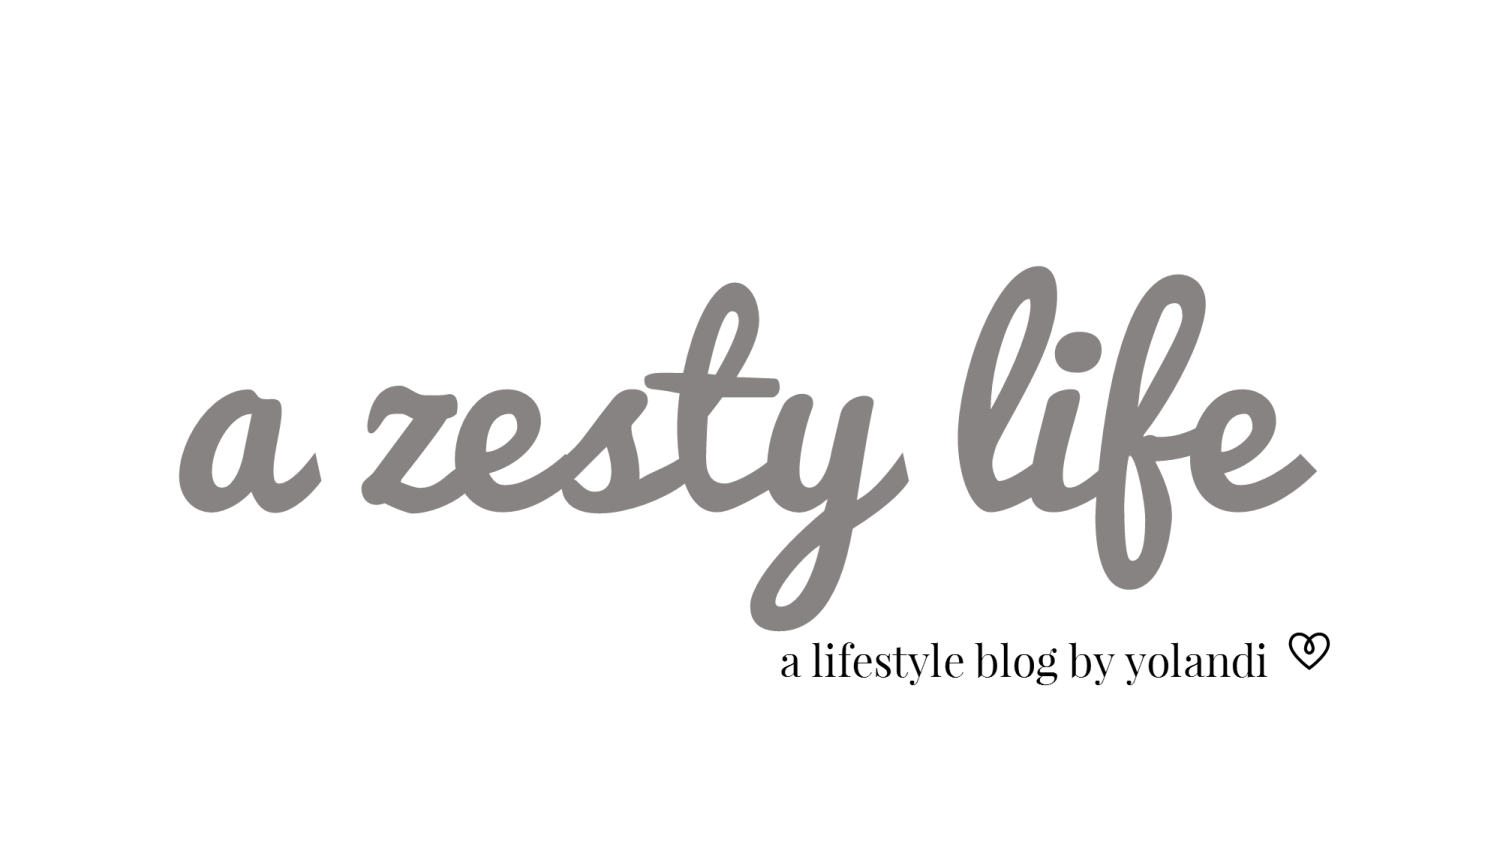 cropped-a-zesty-life-logo-11.png